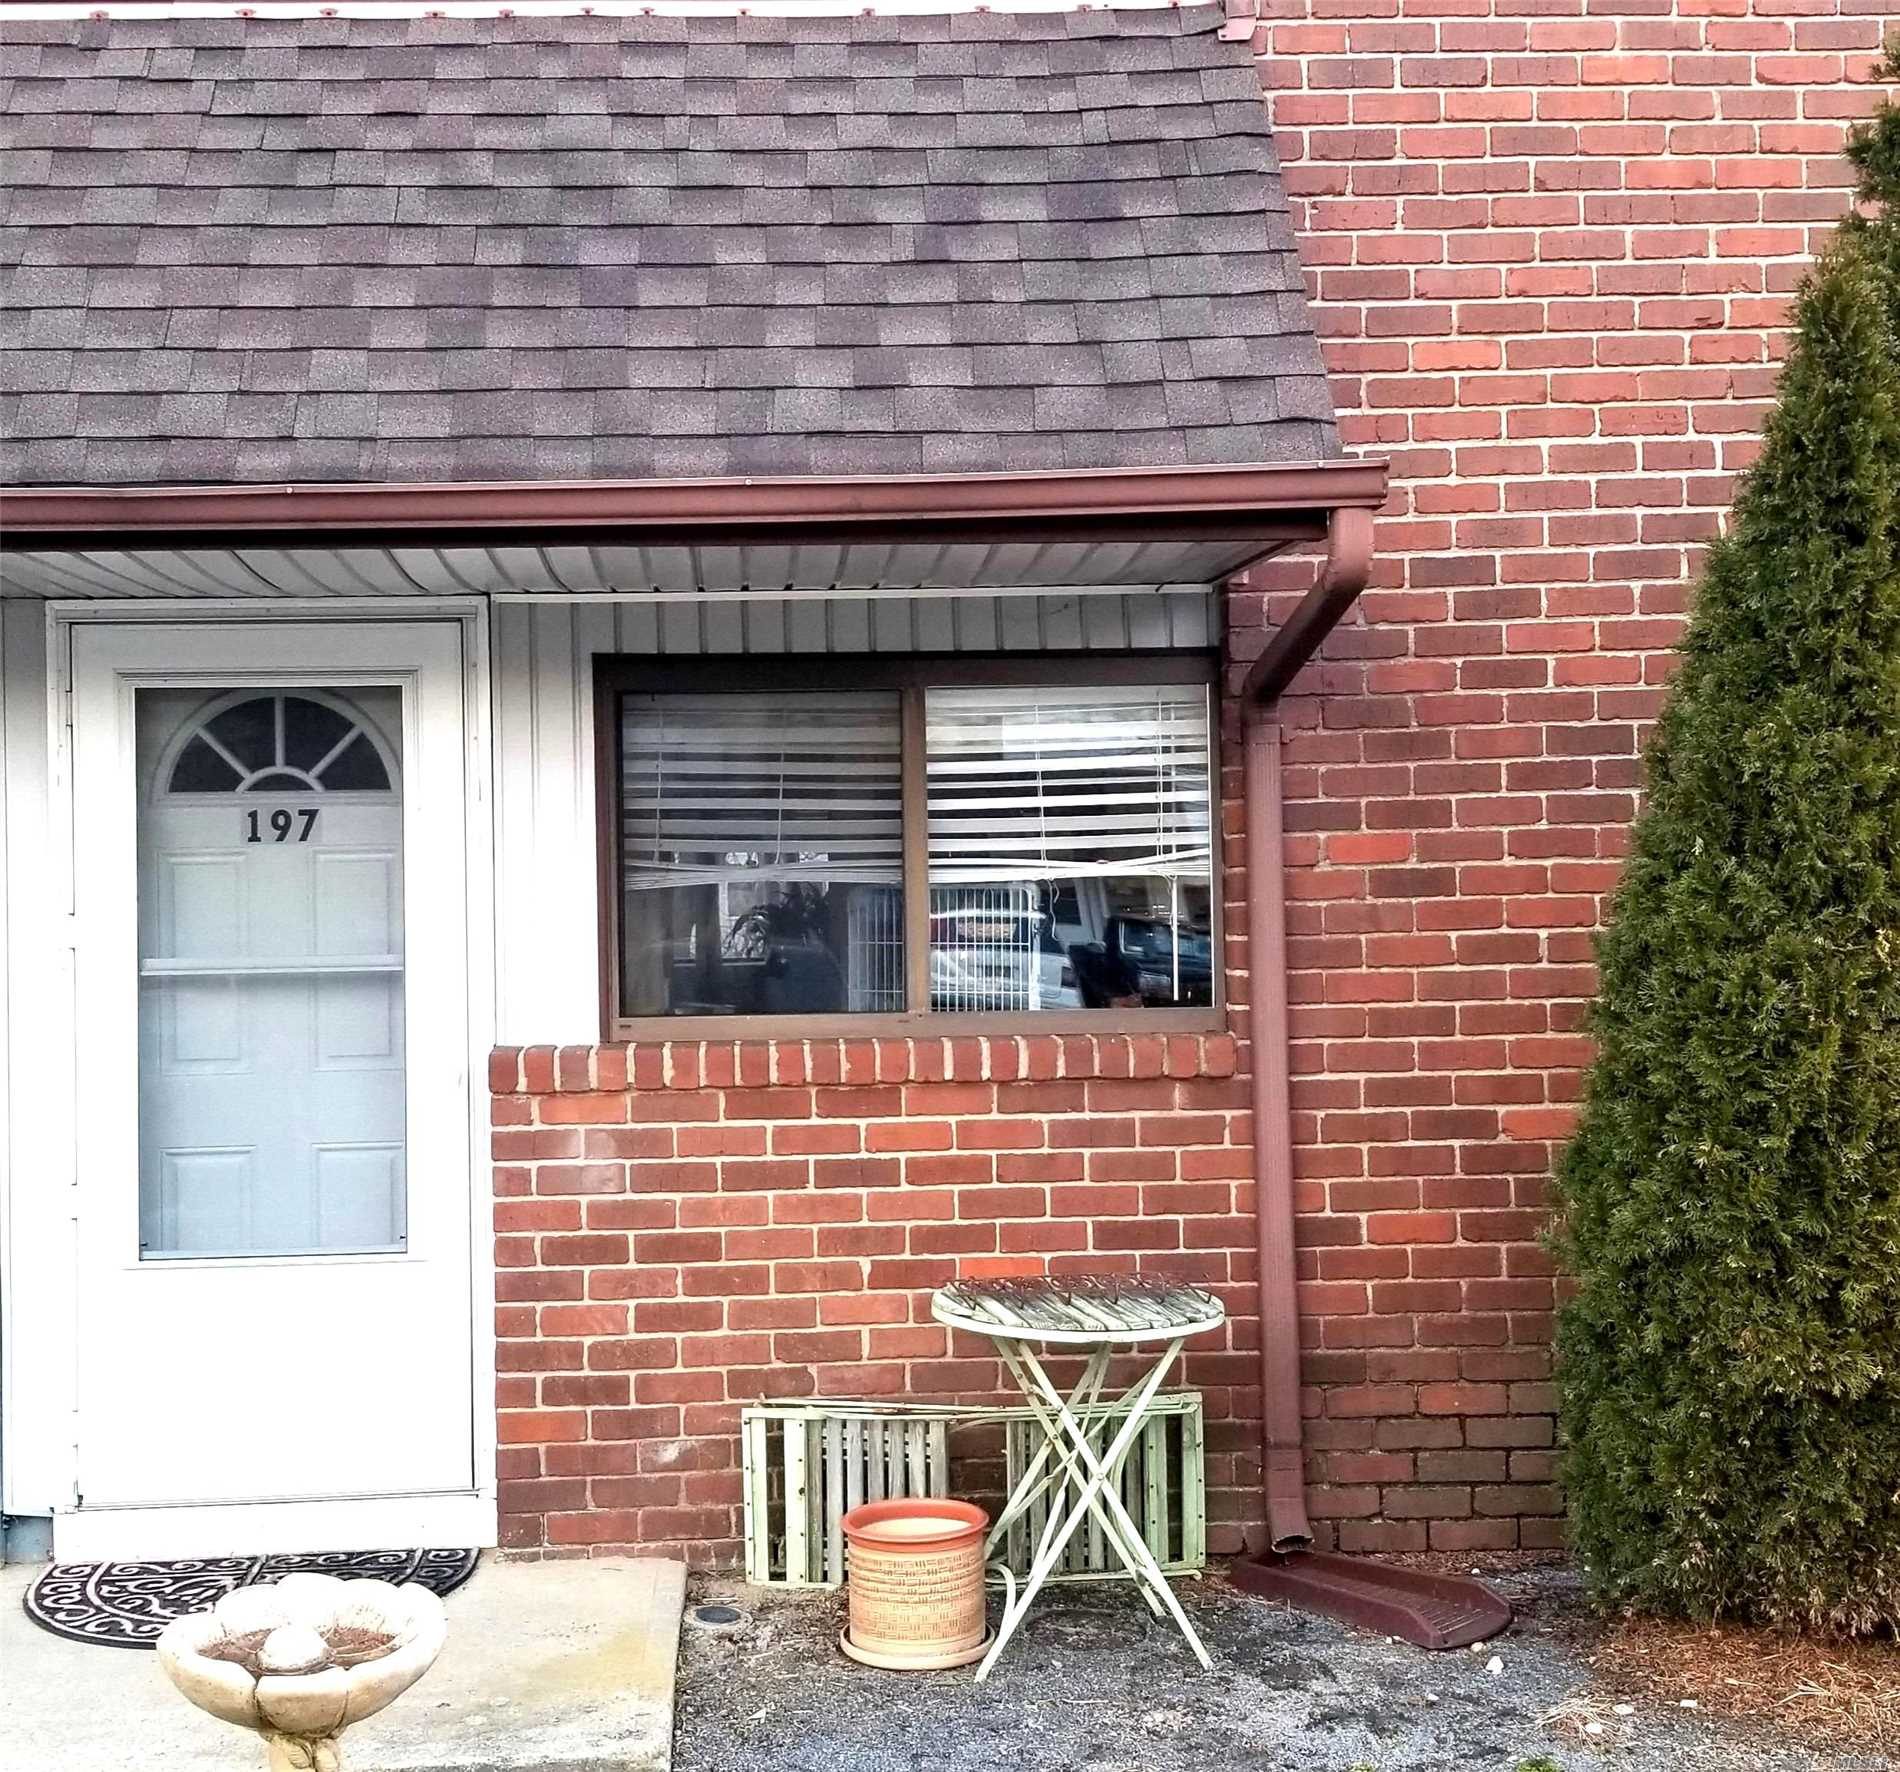 Lots of natural lighting in this spacious 2 bdrm, ground floor corner unit in North Isle Village. Beautiful updated kitchen w/new appliances. Taxes, heat, gas, landscaping, trash, snow removal, and use of all amenities (clubhouse, gym, tennis, basketball and inground pools) are included in maintenance fees!!!!!! Parking lot soon to be repaved. Community center pools recently remodeled.  Conveniently located to major highways.